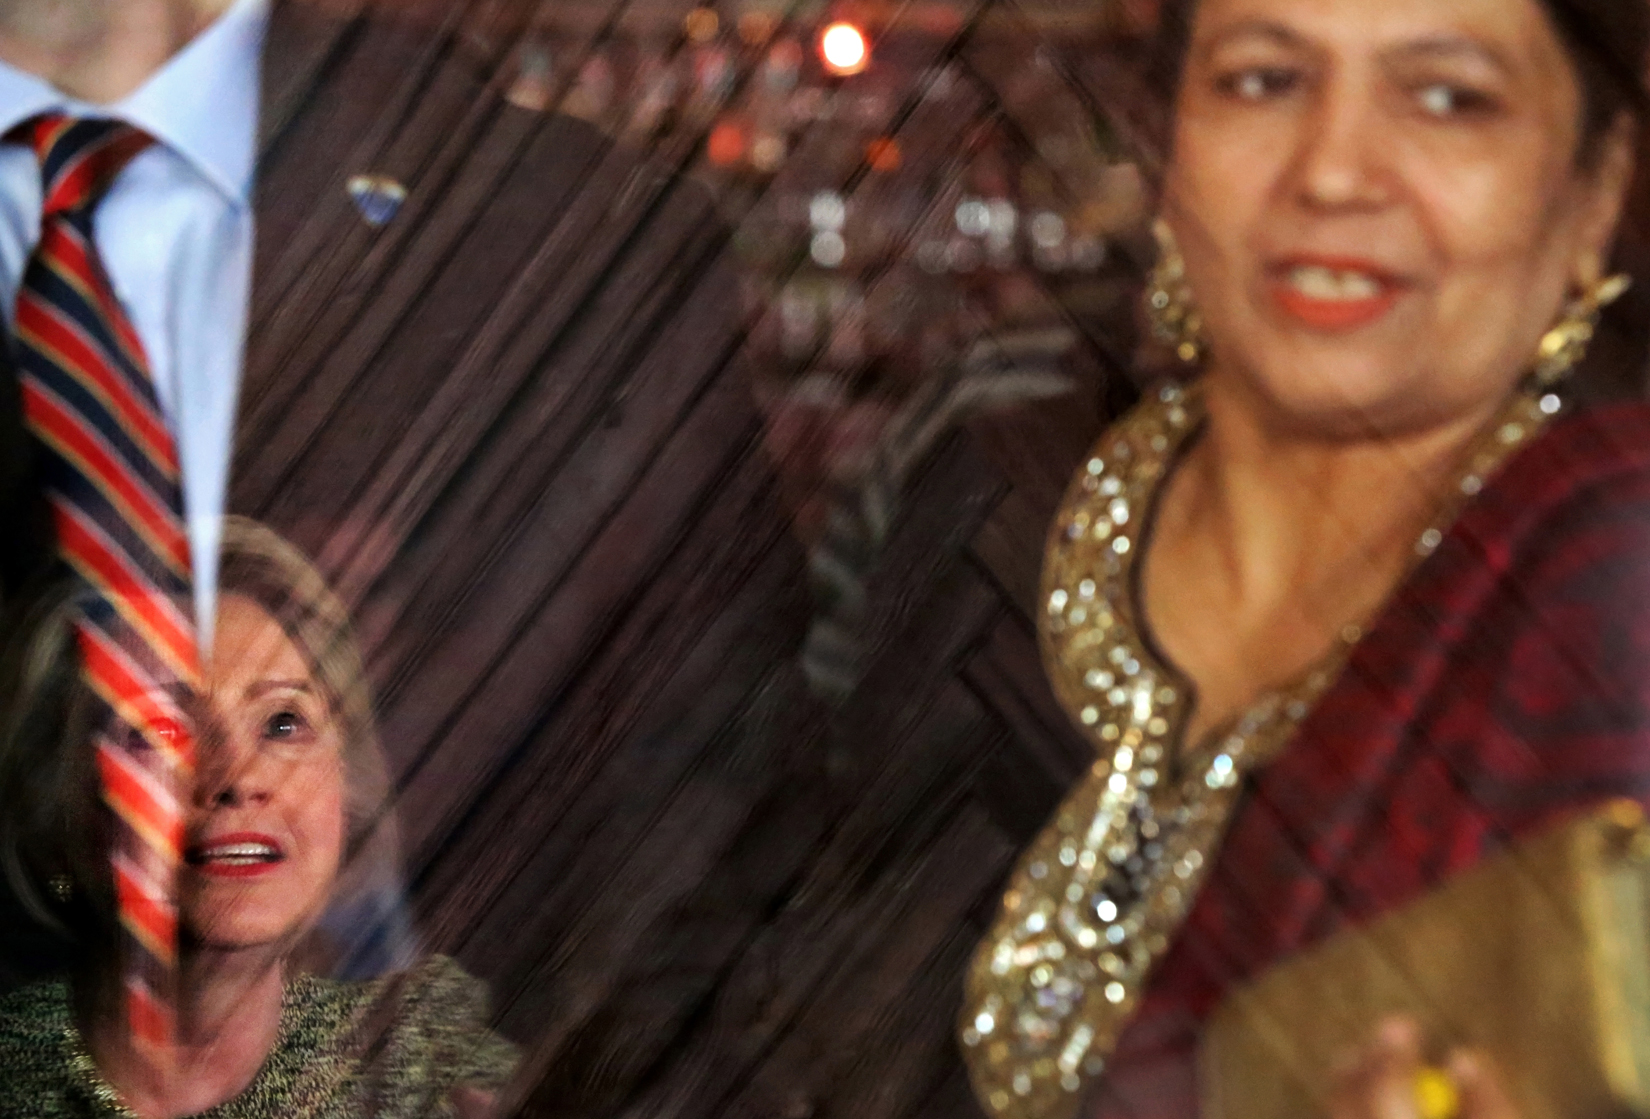 U.S. Presidential candidate Hillary Clinton (D-NY),) on left, speaks at Jackson Diner in Queens, NY, on April 11, 2016. Clinton is seen in the restaurant door's reflection.